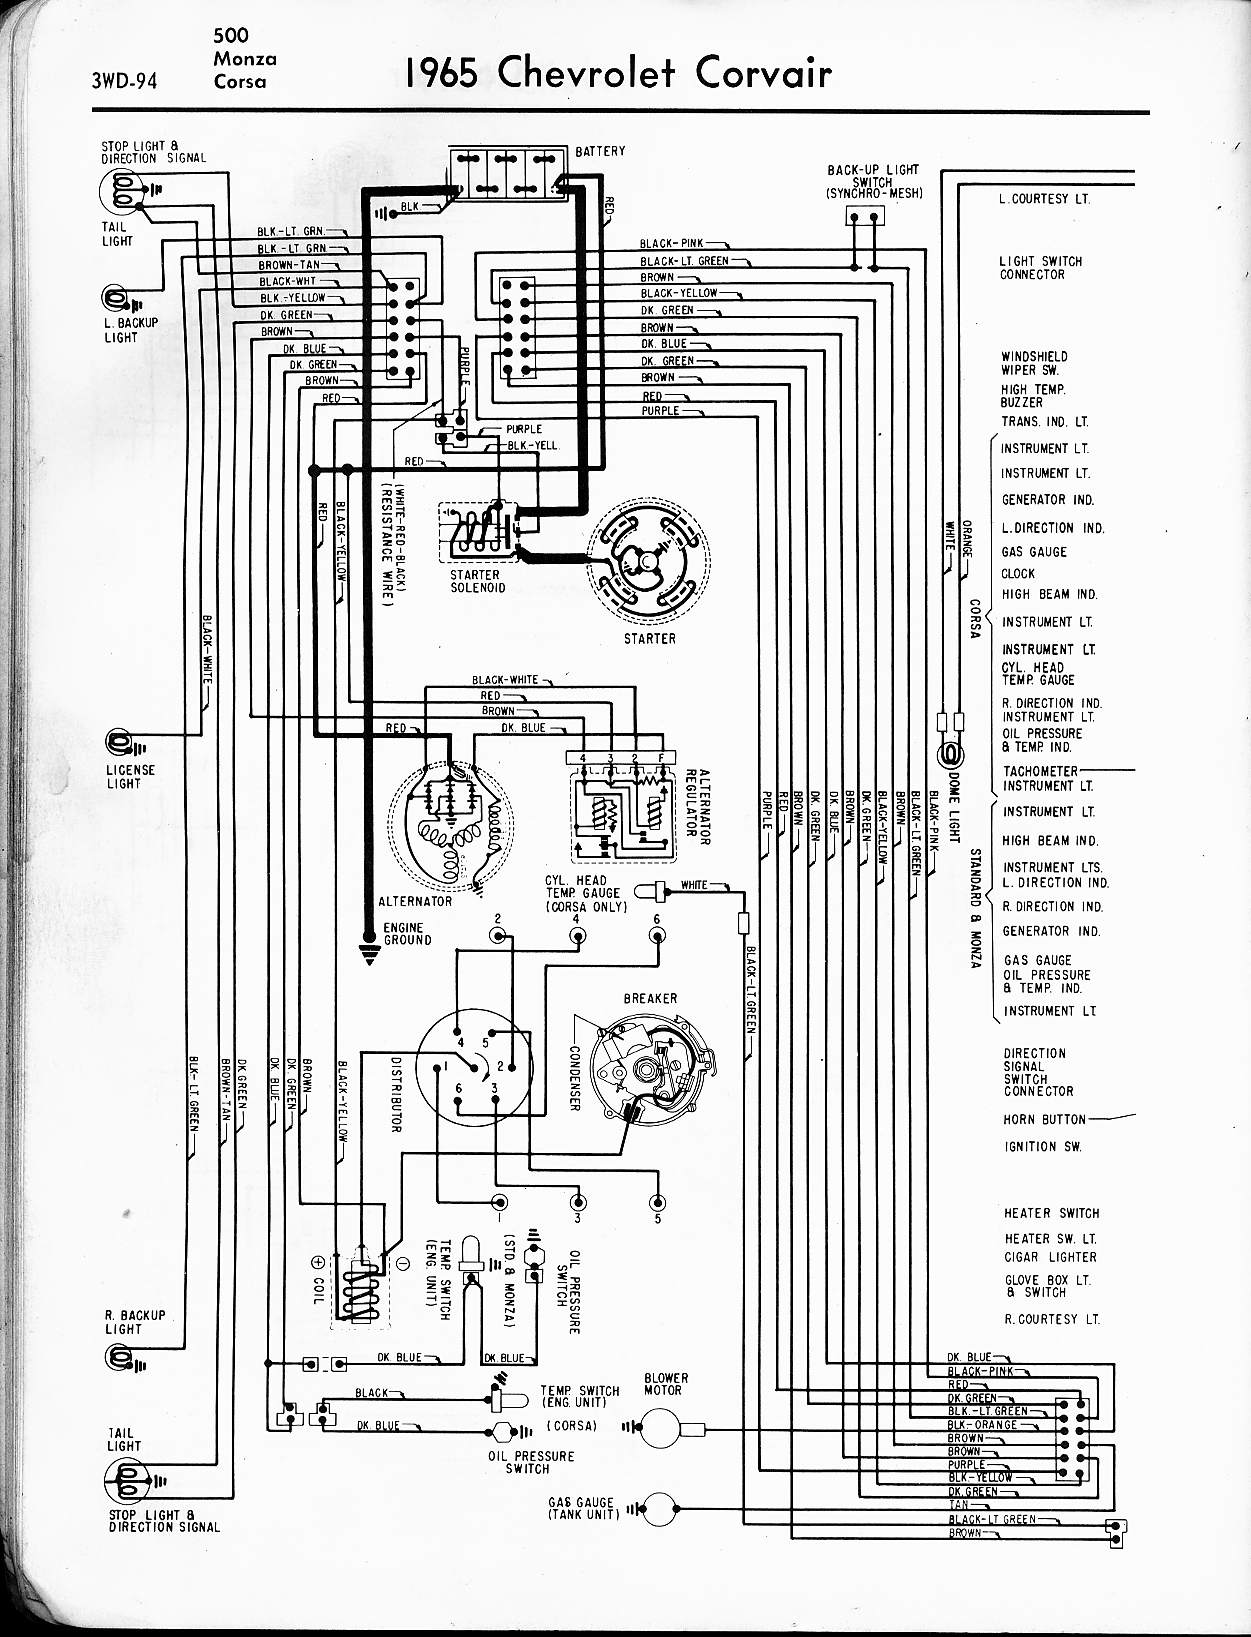 MWireChev64_3WD 094 57 65 chevy wiring diagrams 1964 corvair wiring diagram at love-stories.co